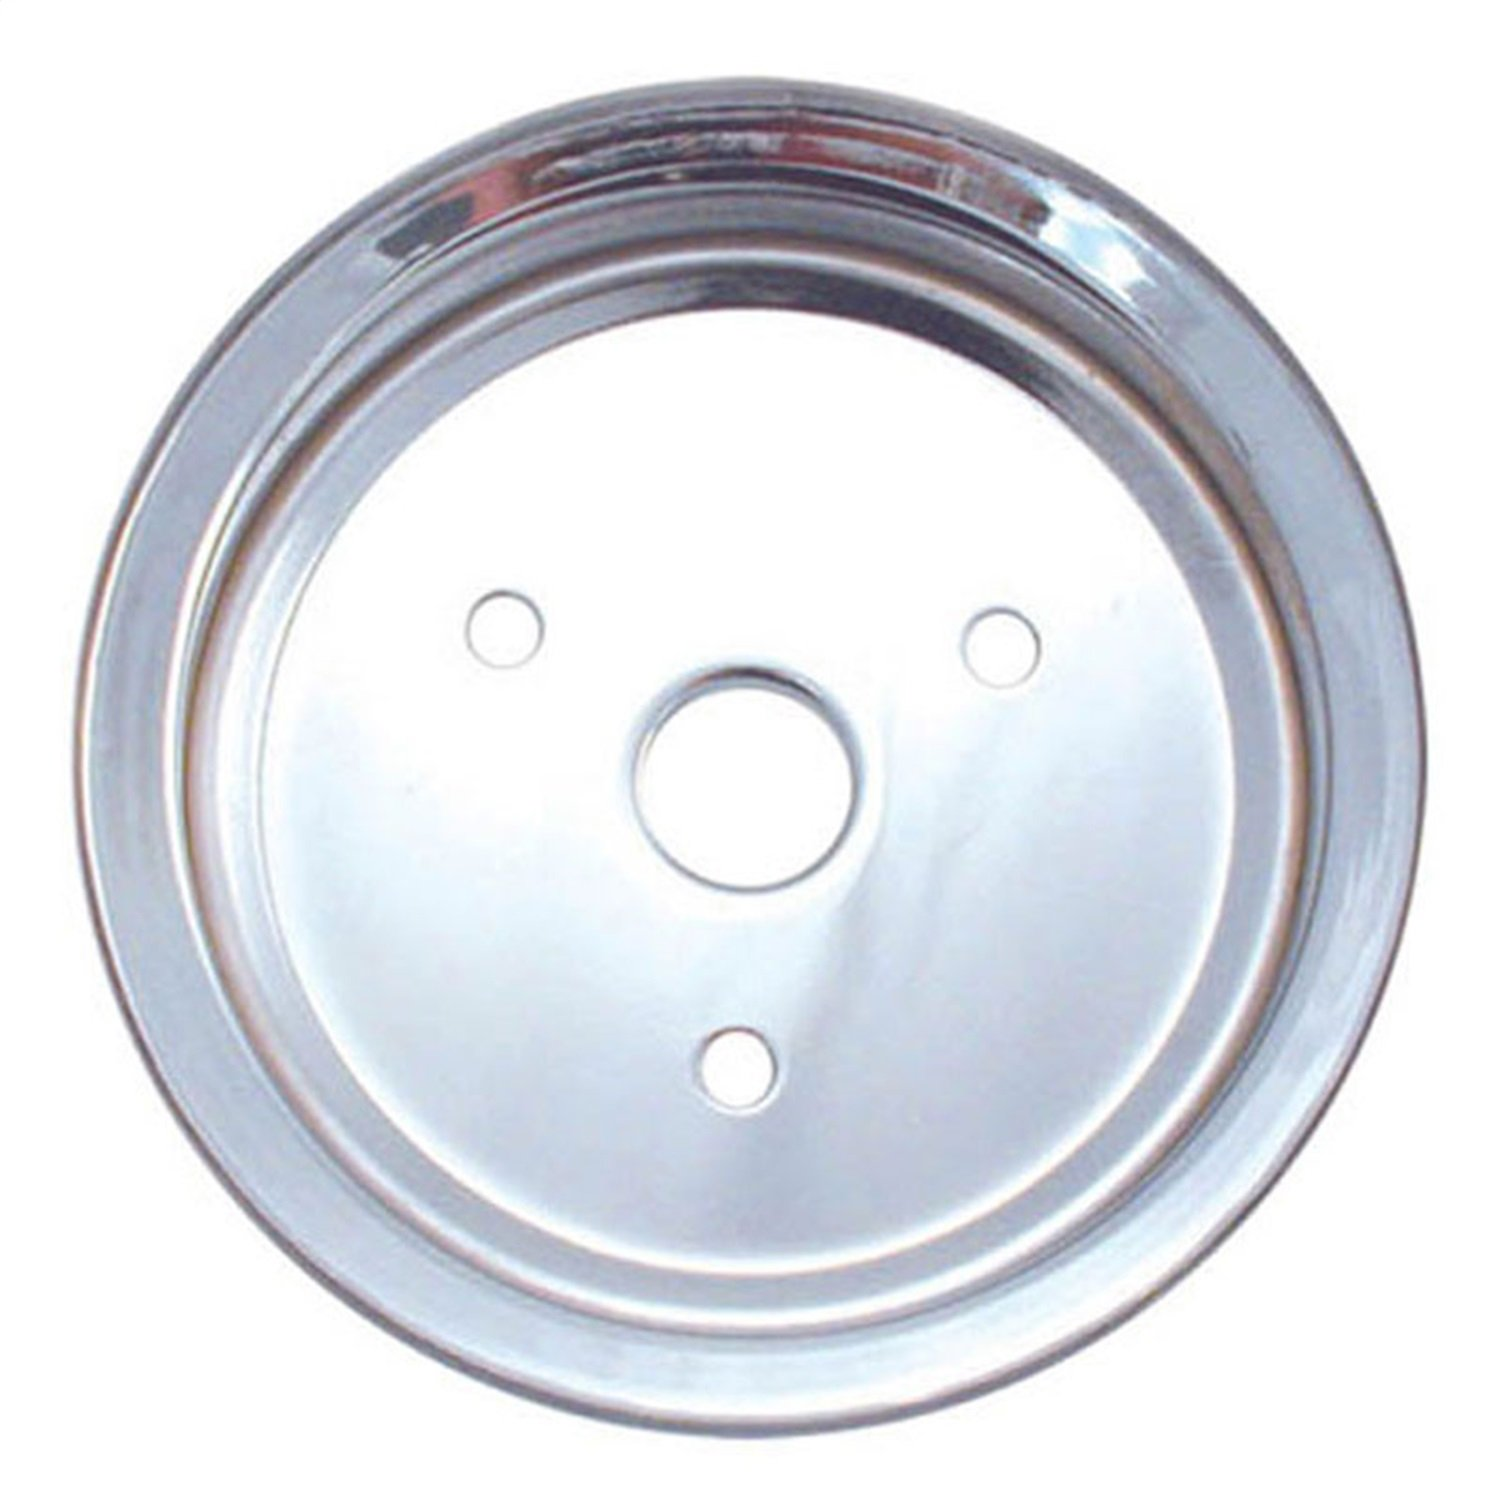 Spectre Performance 4398 Chrome Double Belt Crankshaft Pulley for Small Block Chevy with Short Water Pump